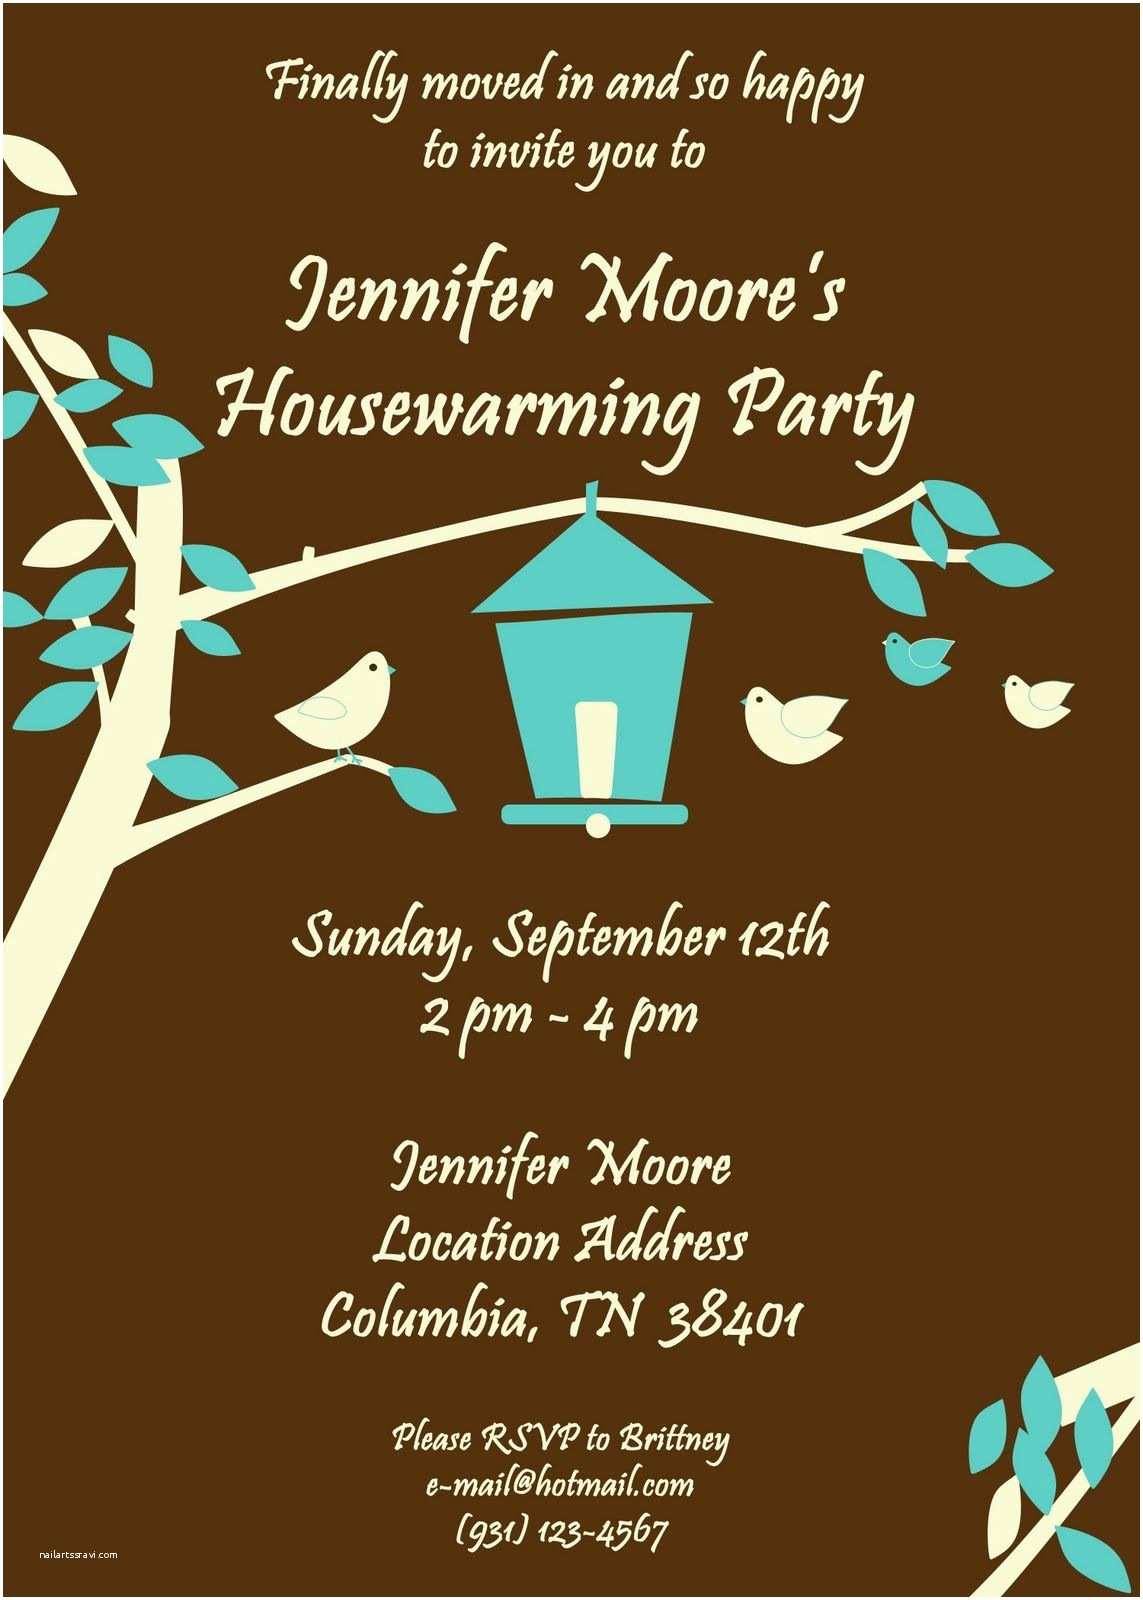 /housewarming/housewarming Invitations Fanci Cakes & More Housewarming Party Cake & Invitation